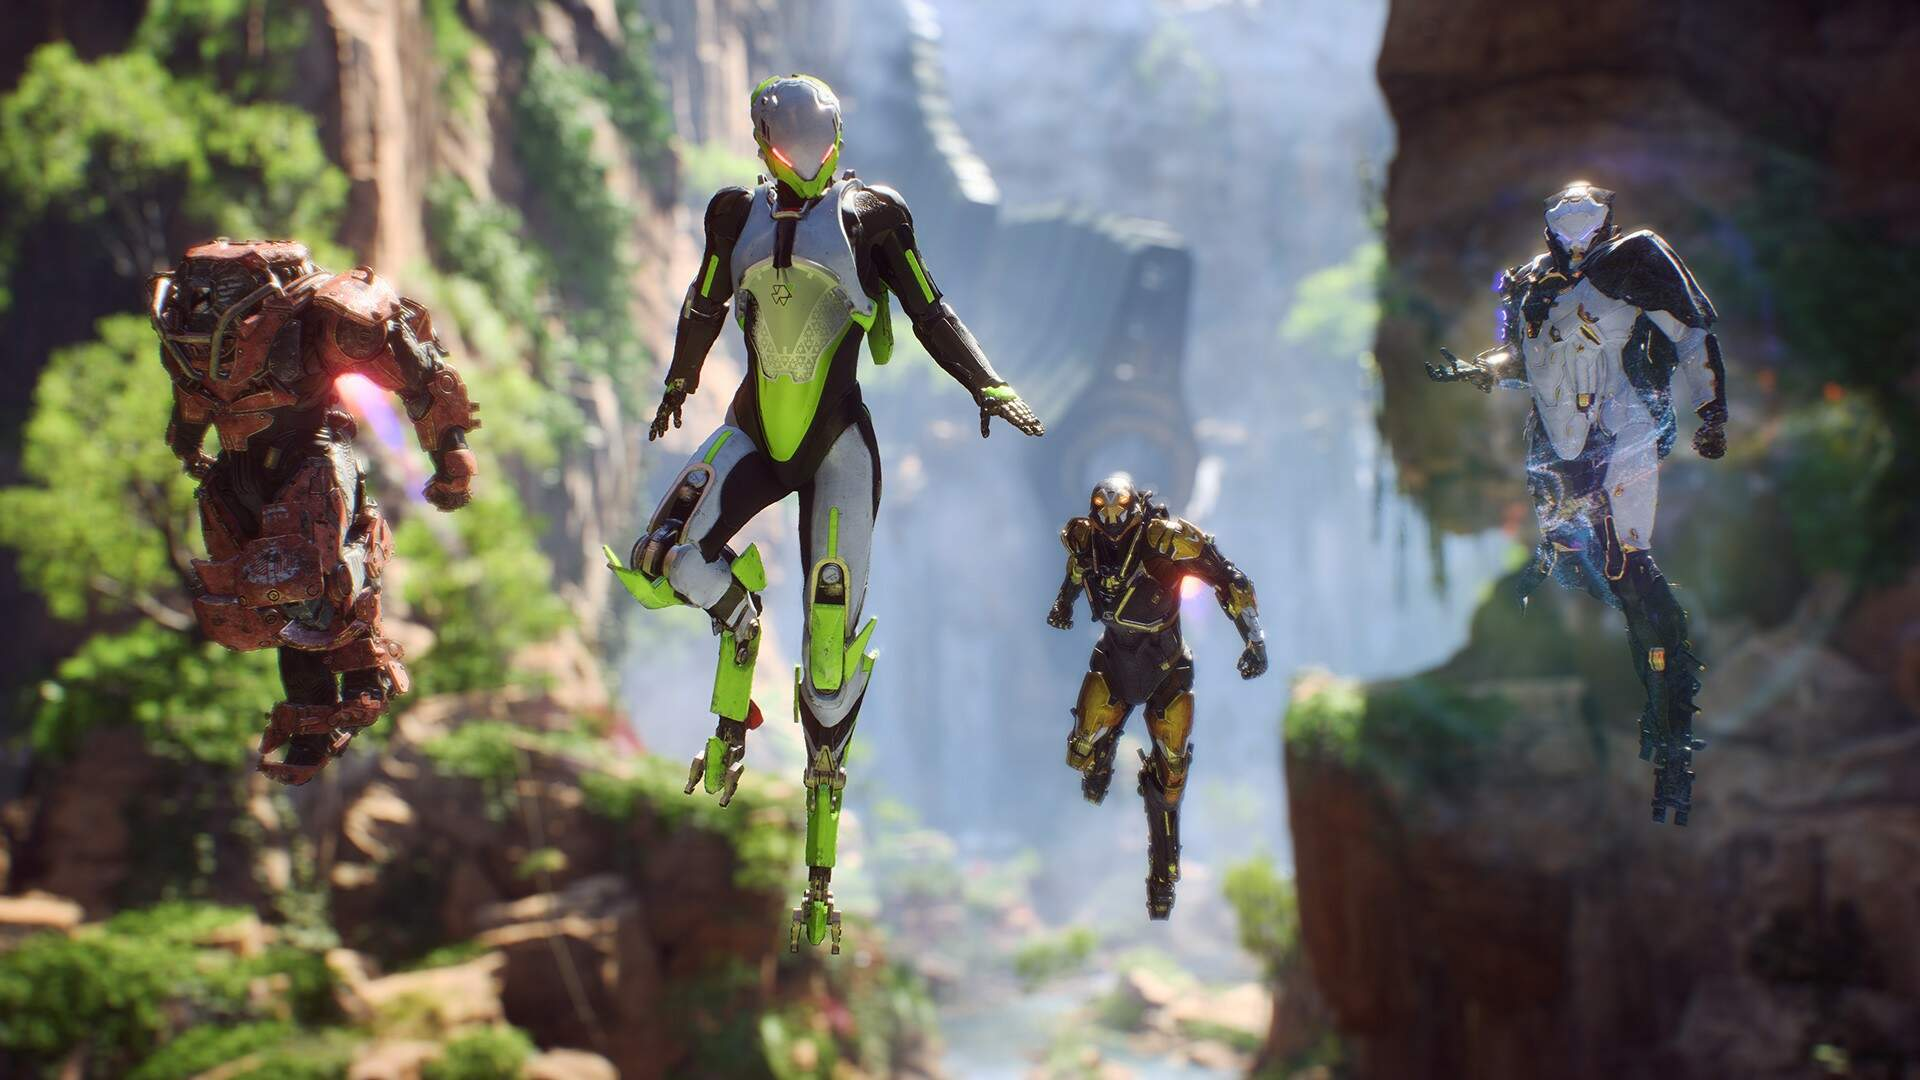 It Looks Like Anthem Avoided an Early Microtransaction Controversy